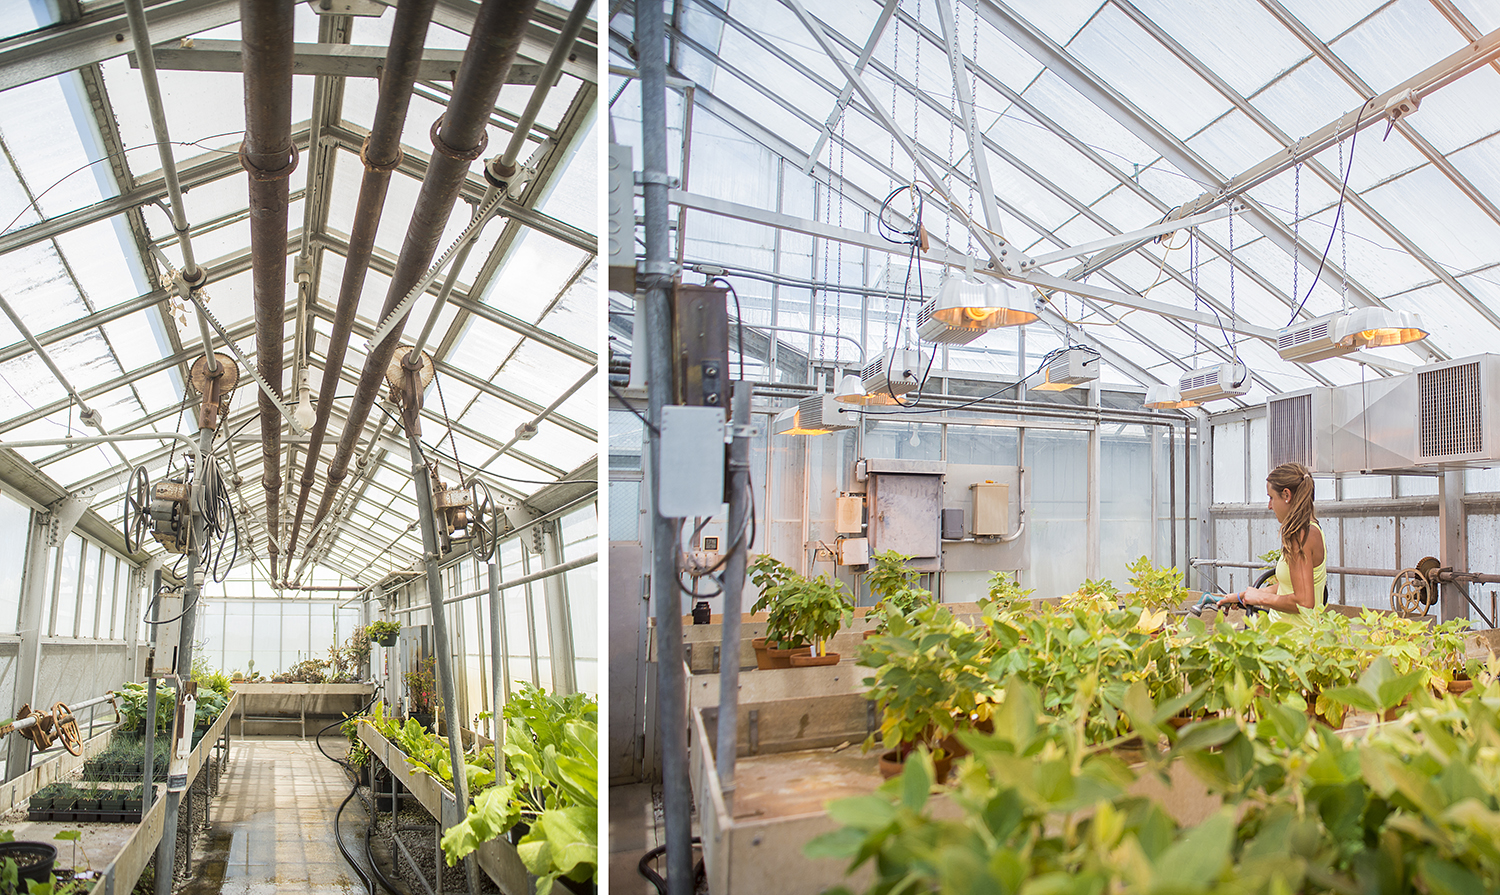 SIU College of Agricultural Sciences Research Greenhouse